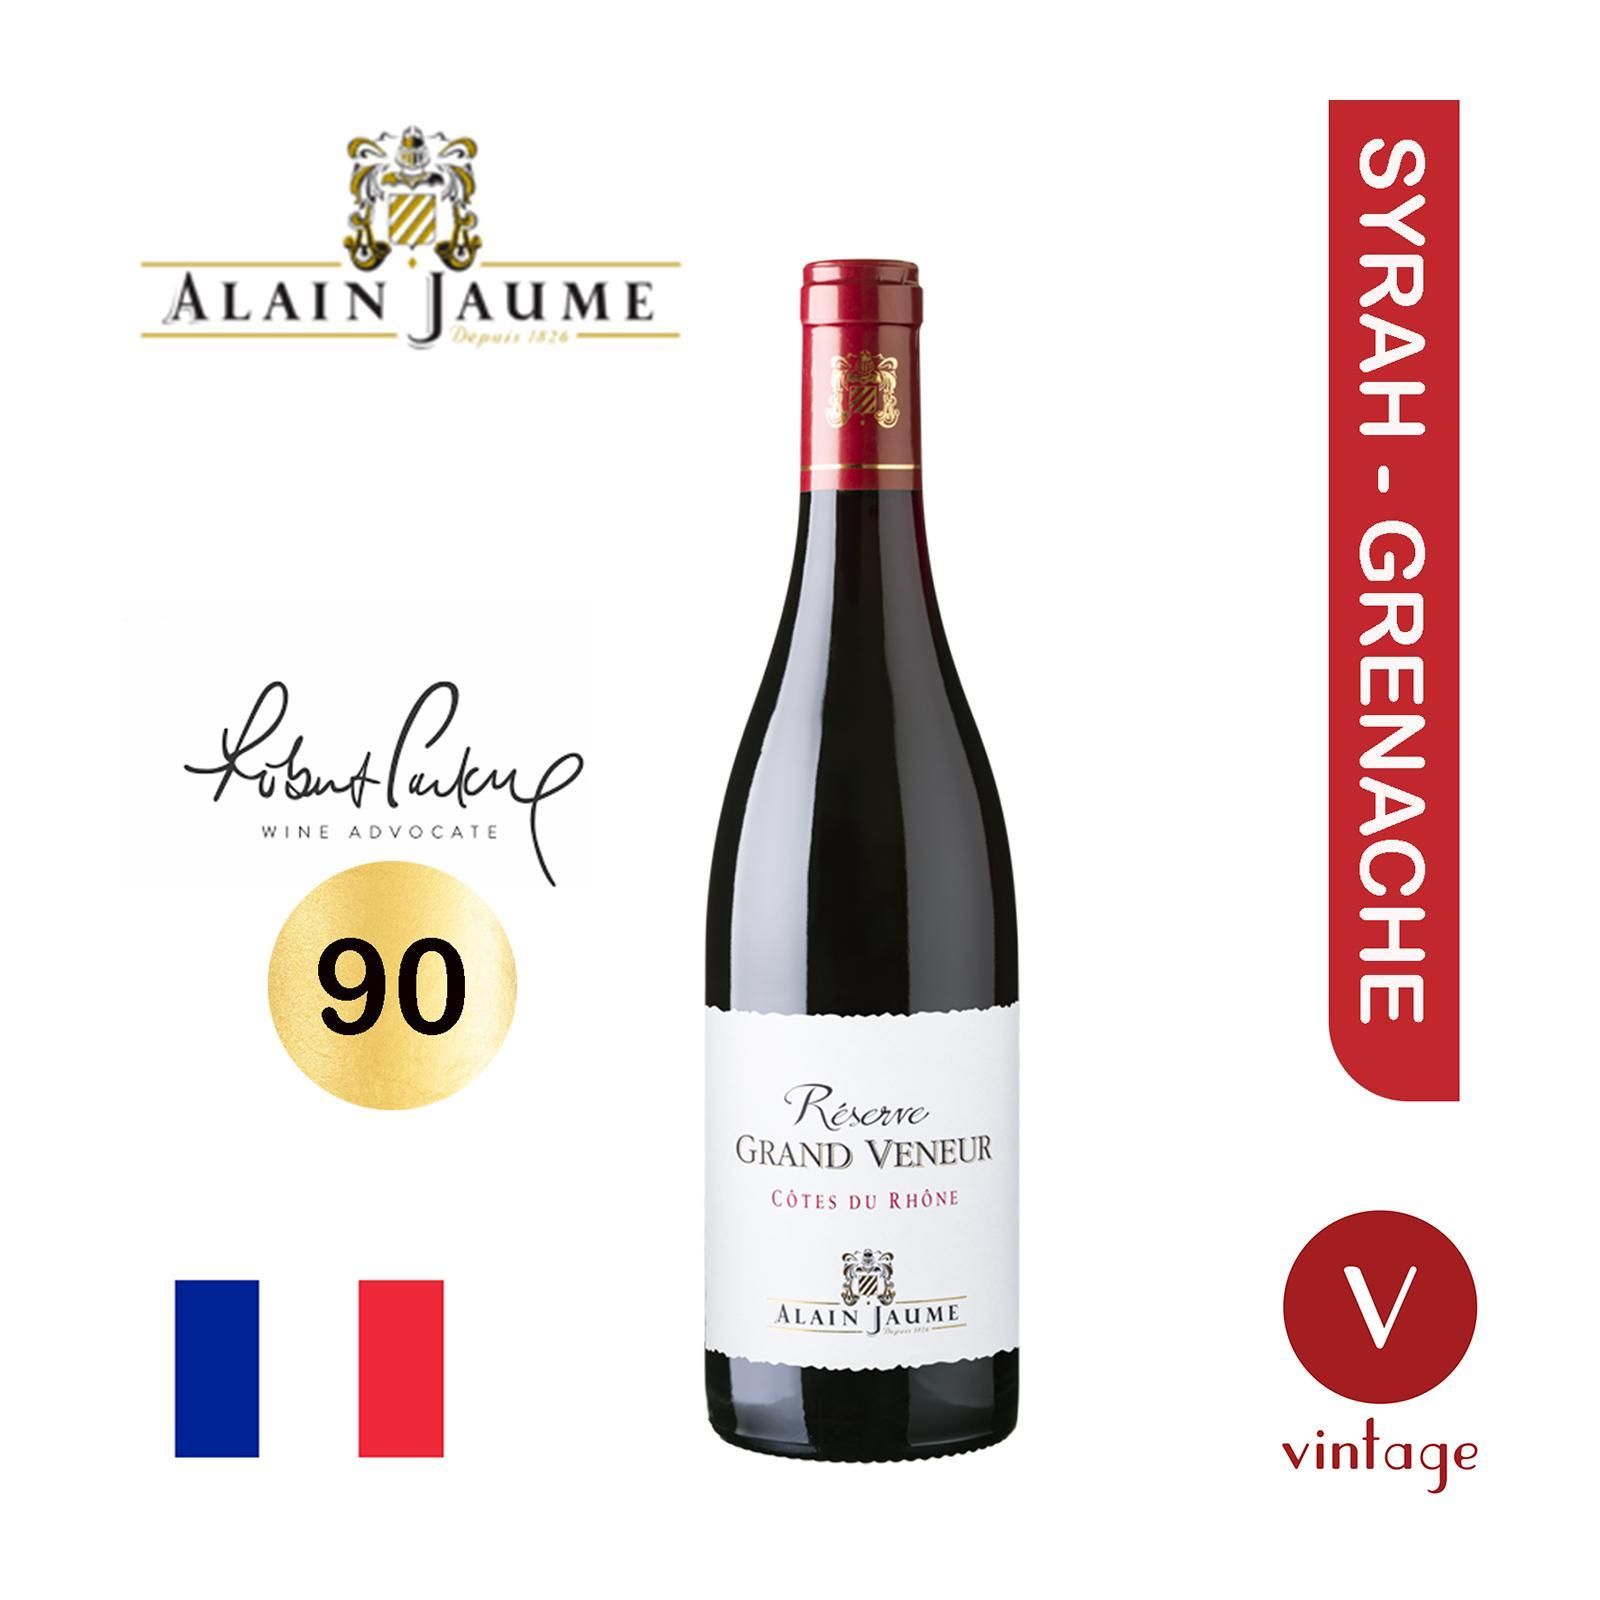 Domaine Grand Veneur Cotes Du Rhone - Alain Jaume - Red Wine - By The Vintage Wine Club